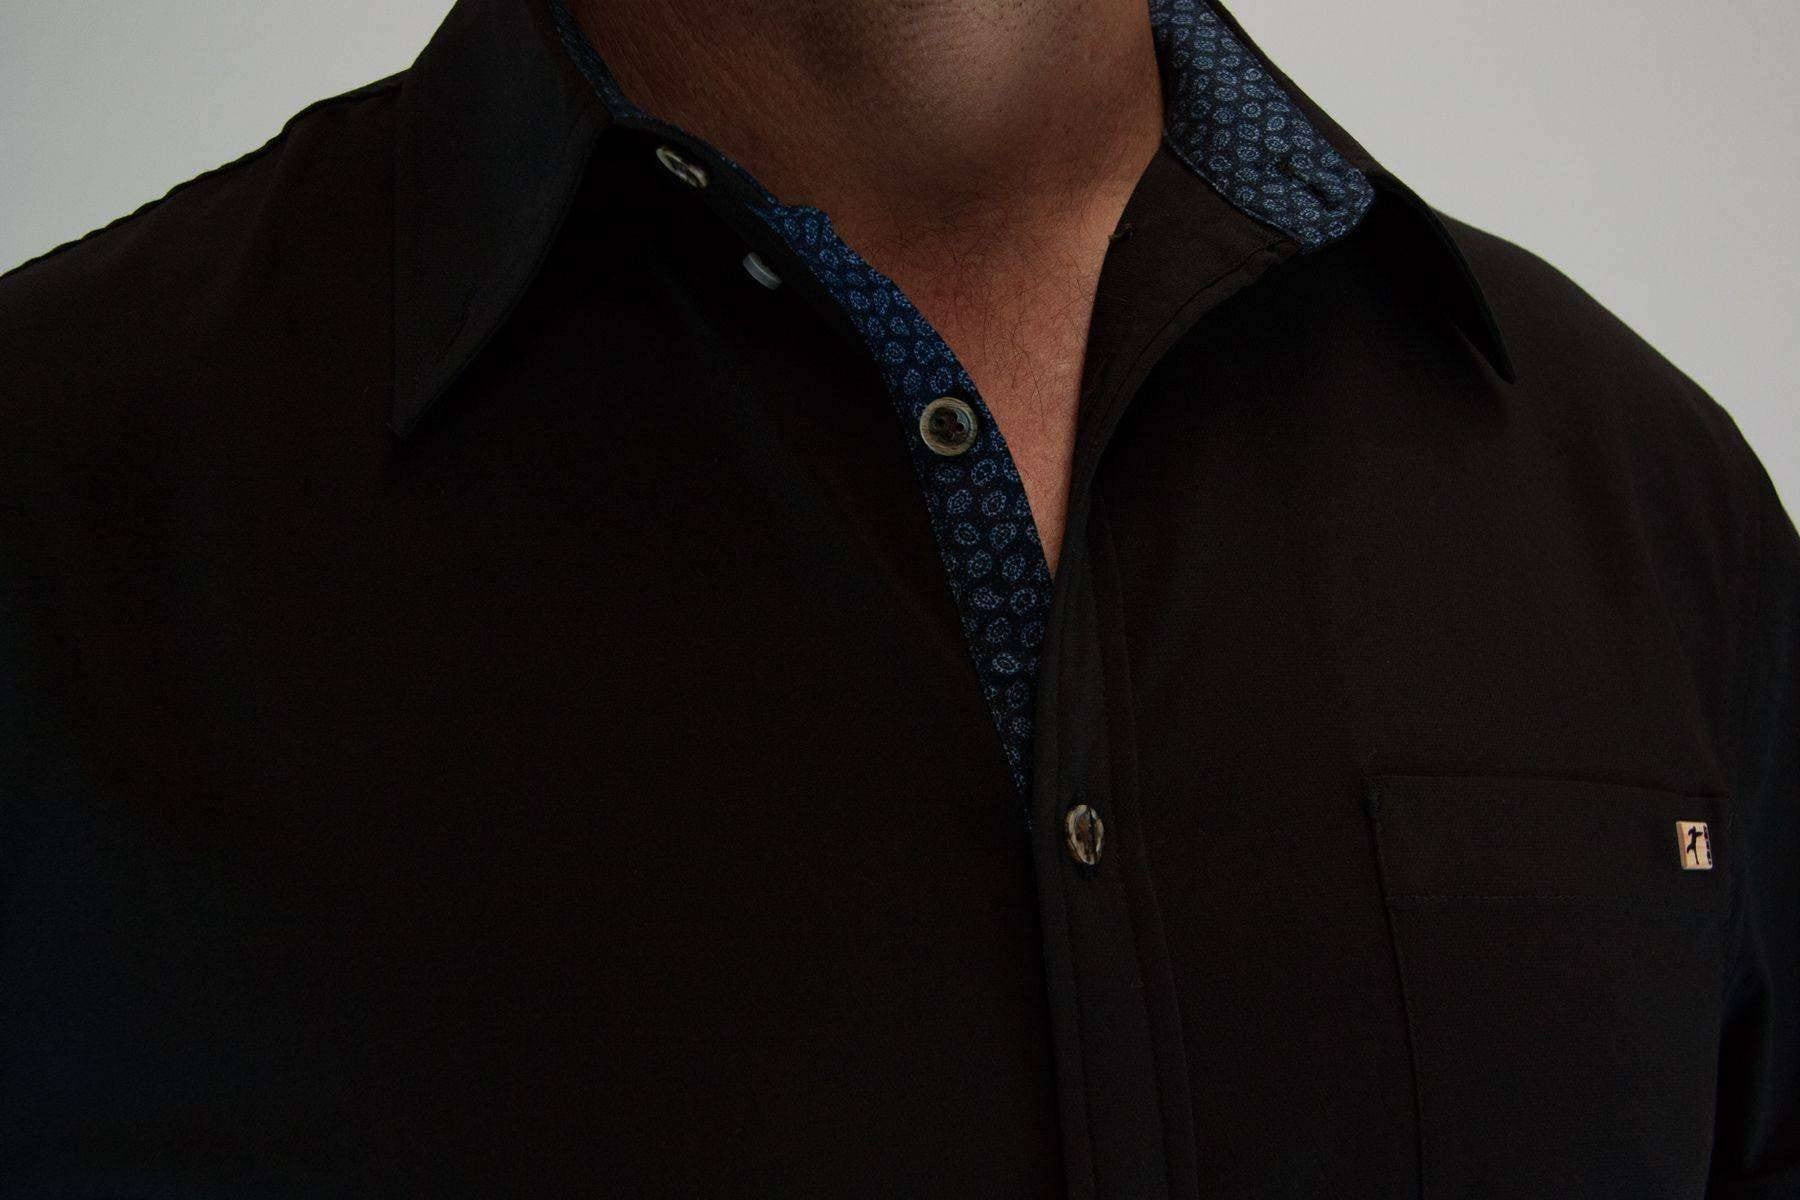 An image showing Dude Woven Shirt from Disc Golf Apparel